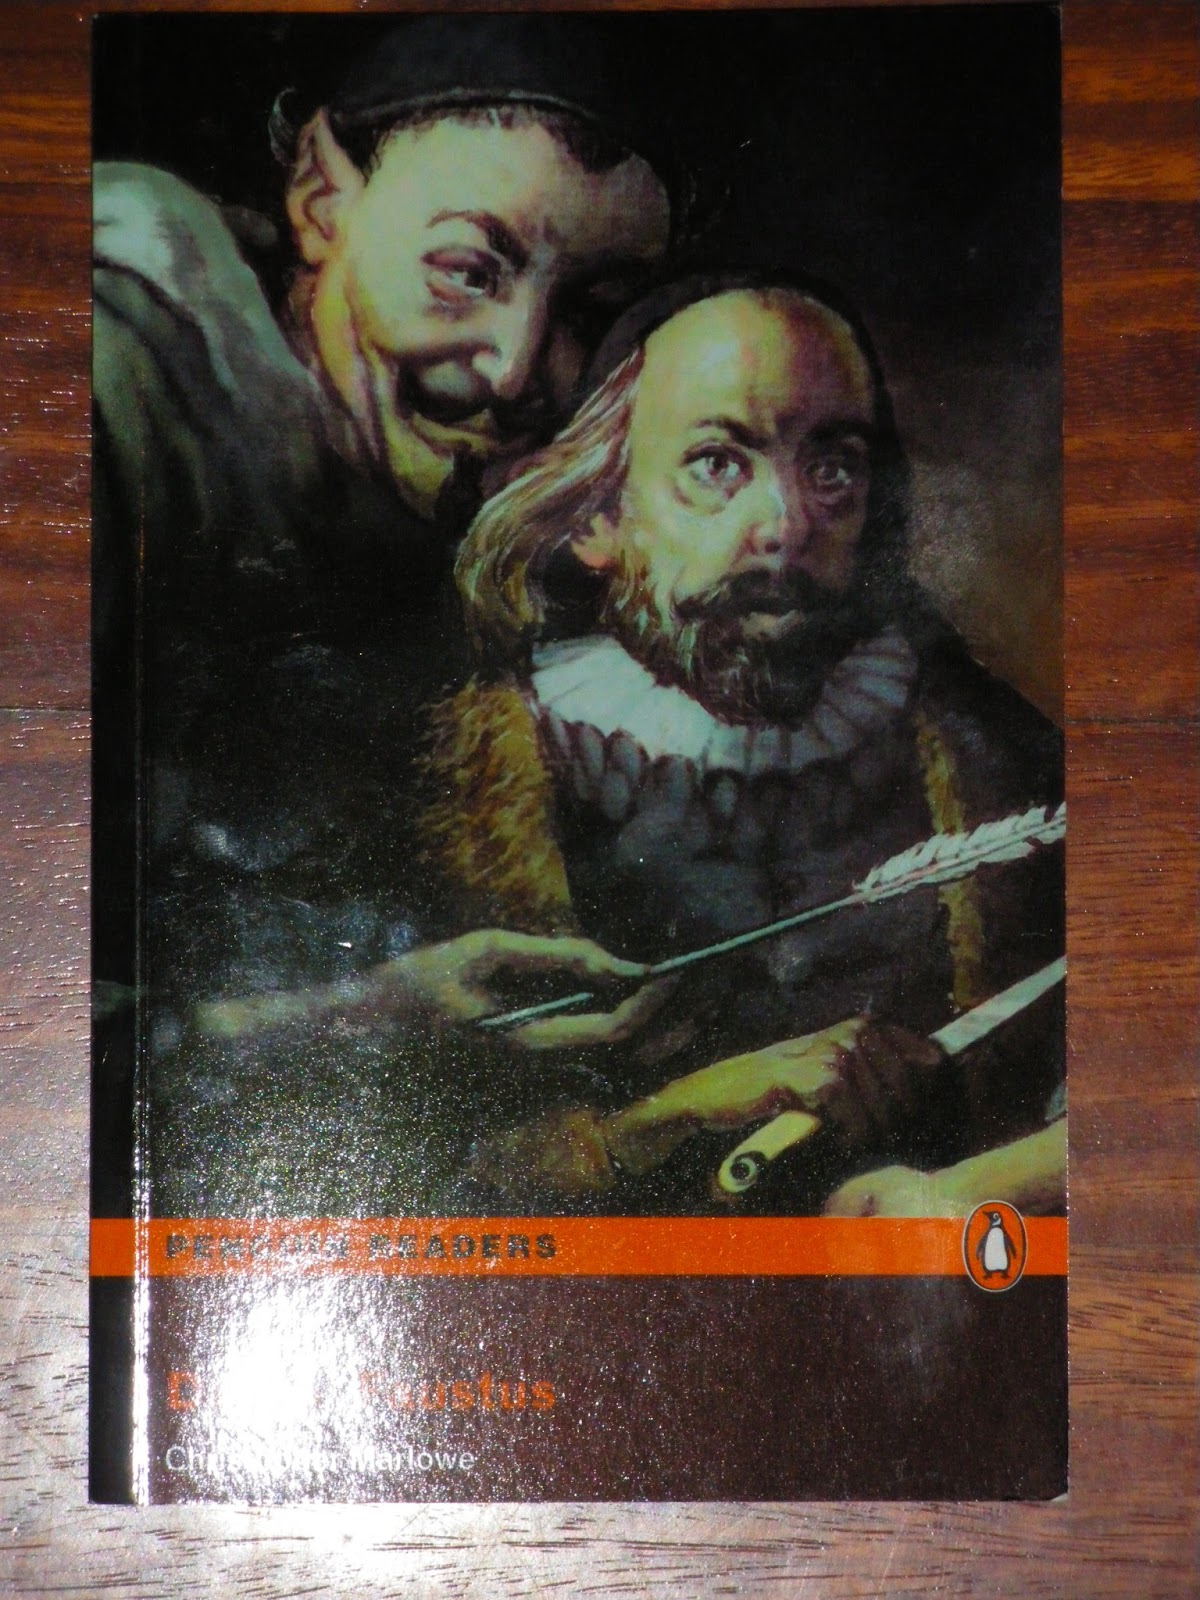 obsession as a human trait in doctor faustus a play by christopher marlowe Free essay: doctor faustus as a tragic hero doctor faustus is the most famous play of christopher marlowe and this play alone has perhaps made that his name.